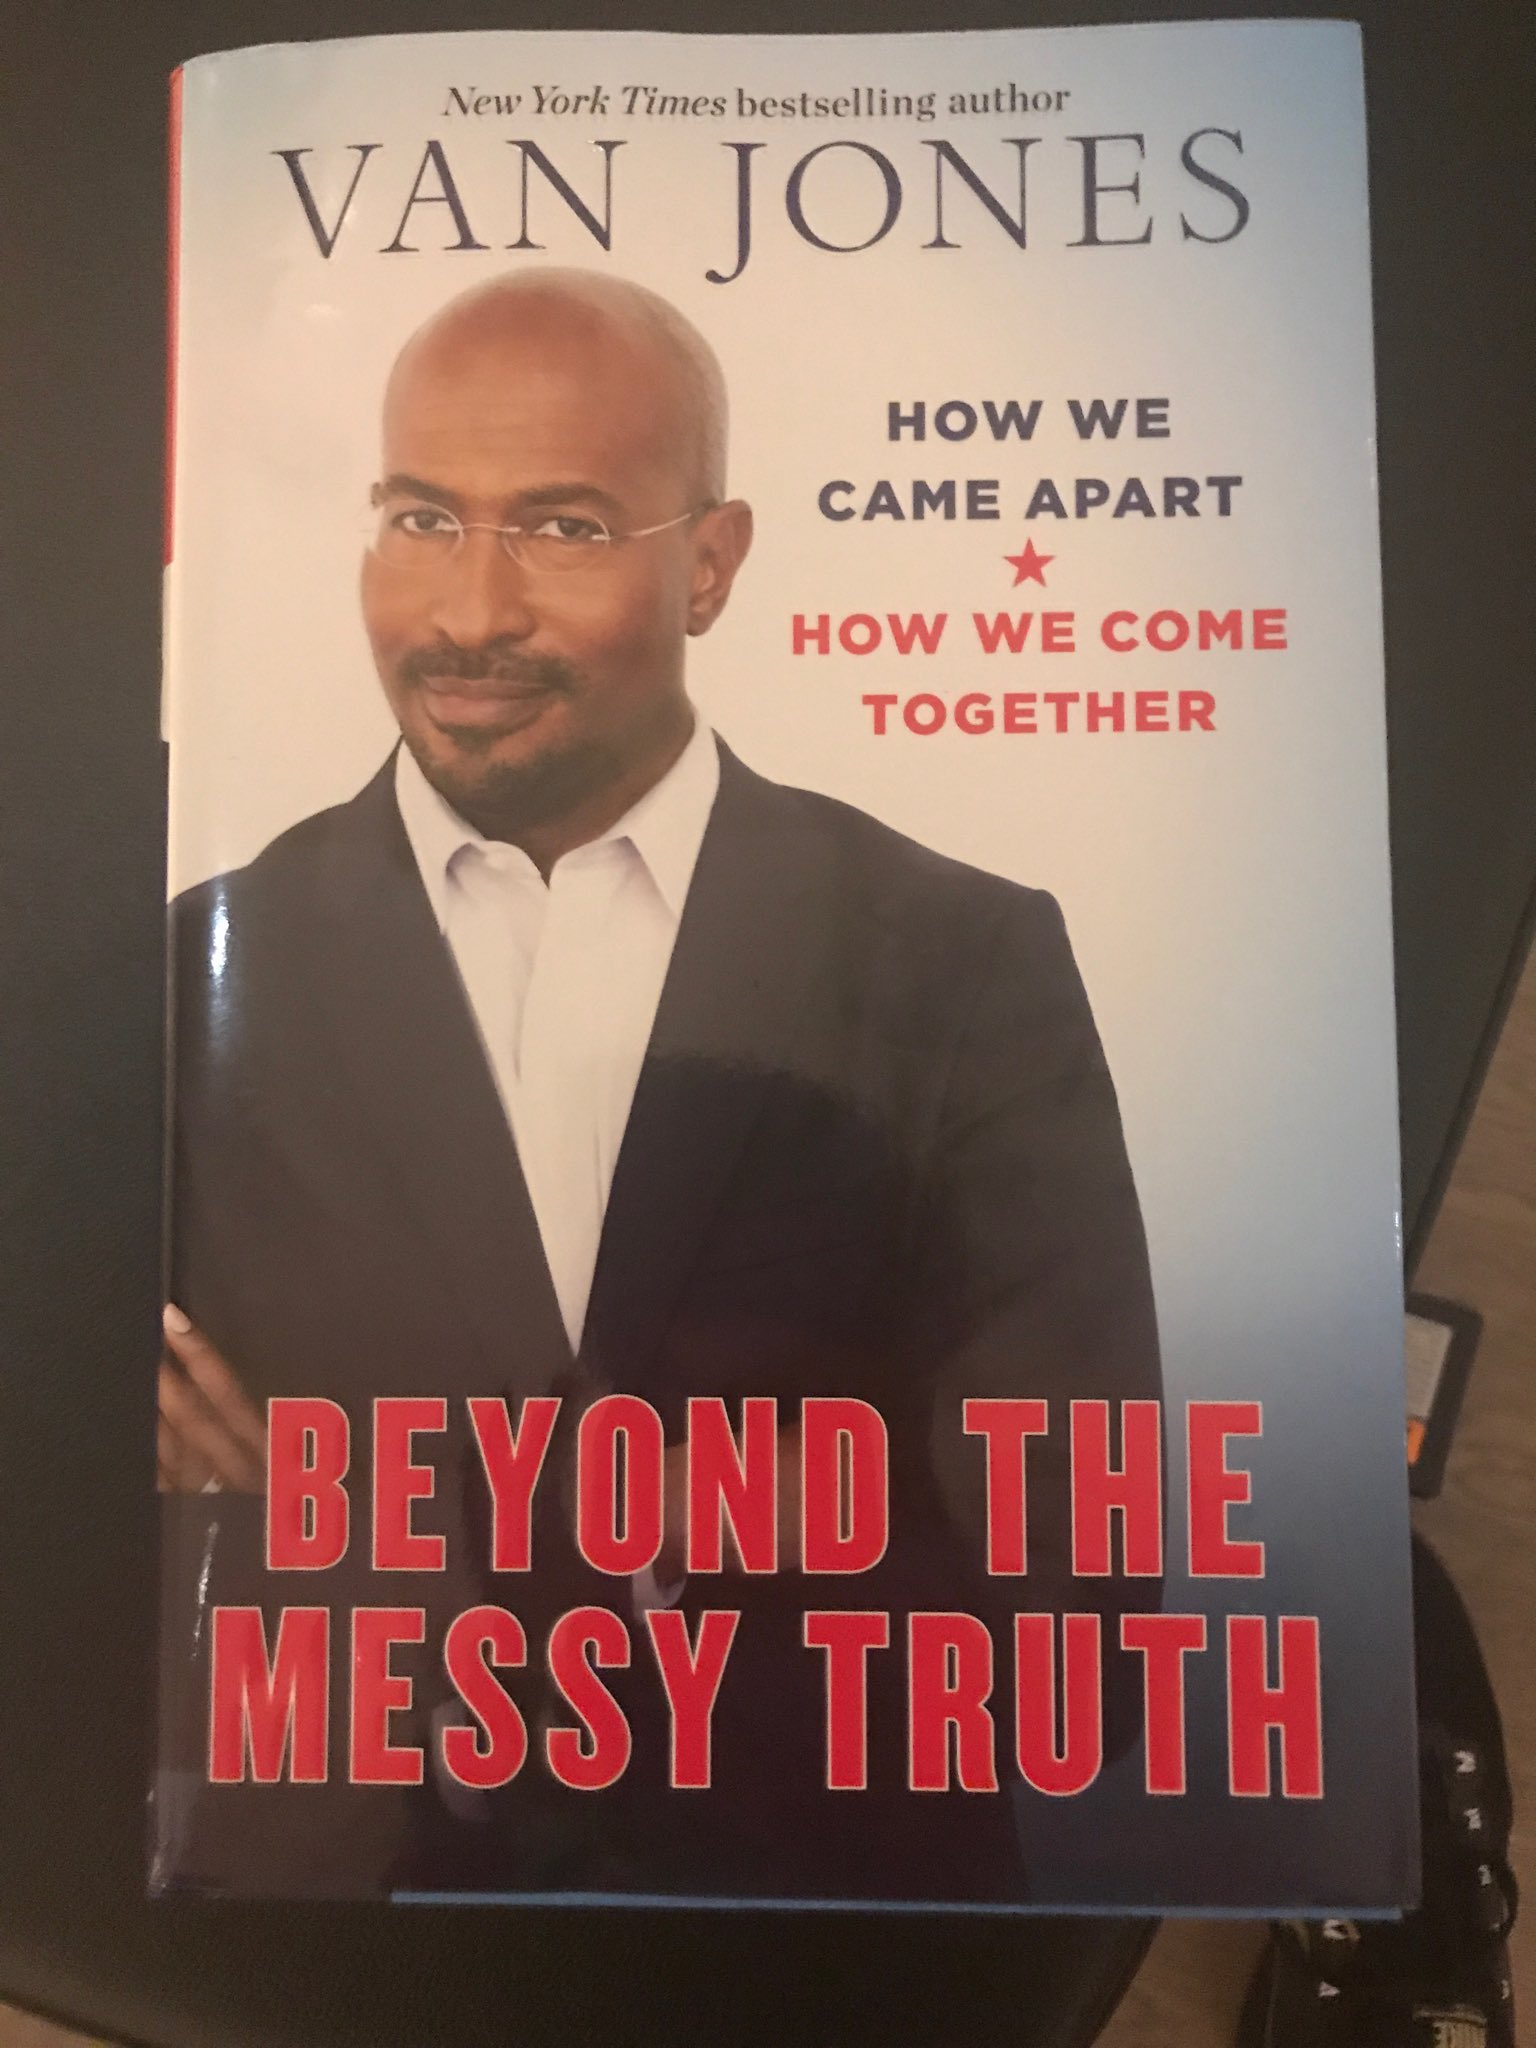 My very thoughtful friend wrote a very thoughtful book @VanJones68 https://t.co/zXTiCkyGlq